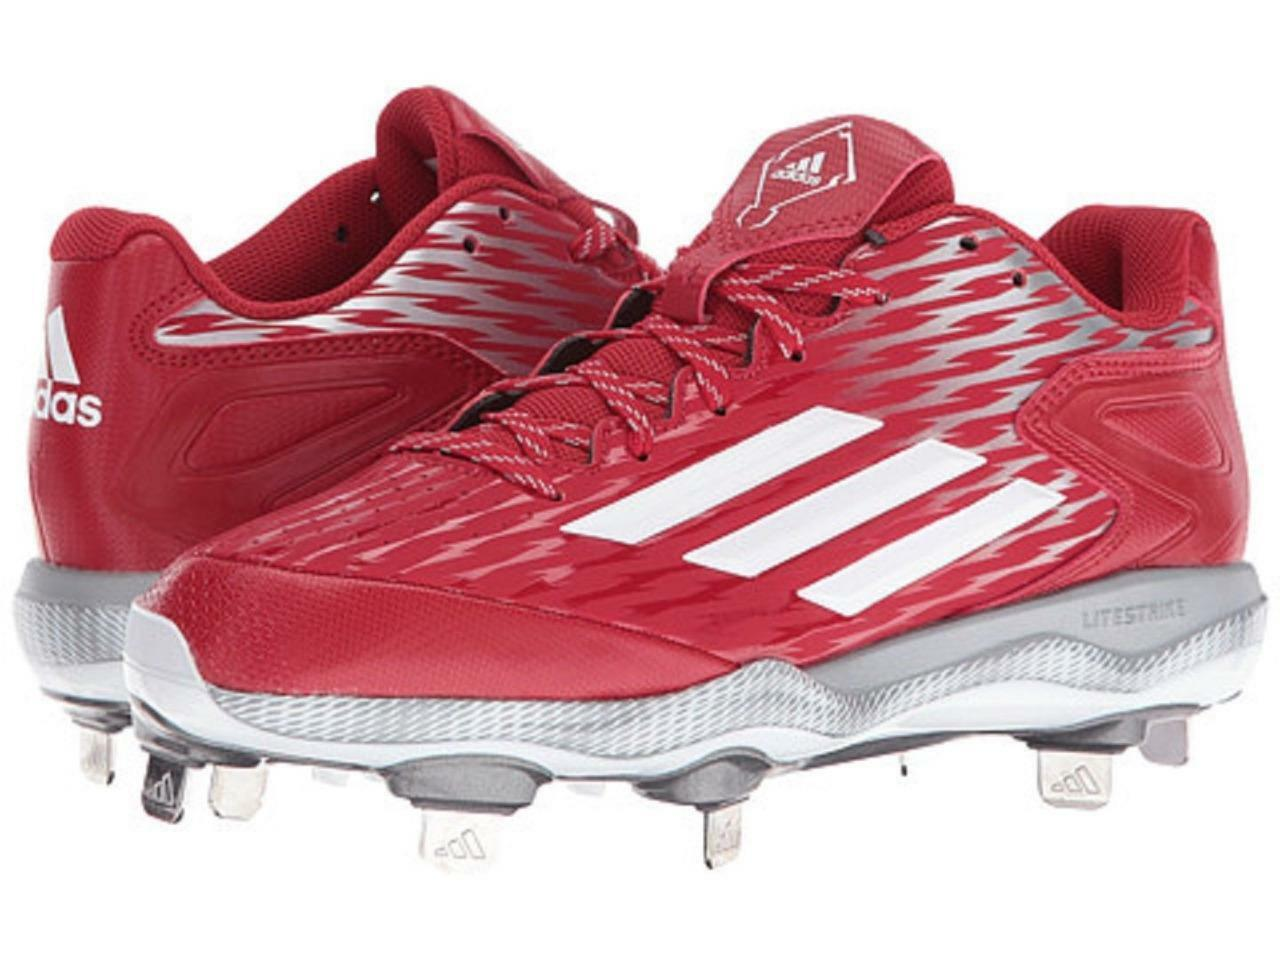 NEW Womans Sz-7.5 Adidas Power Alley 3 Metal Softball Baseball Cleats-Red White